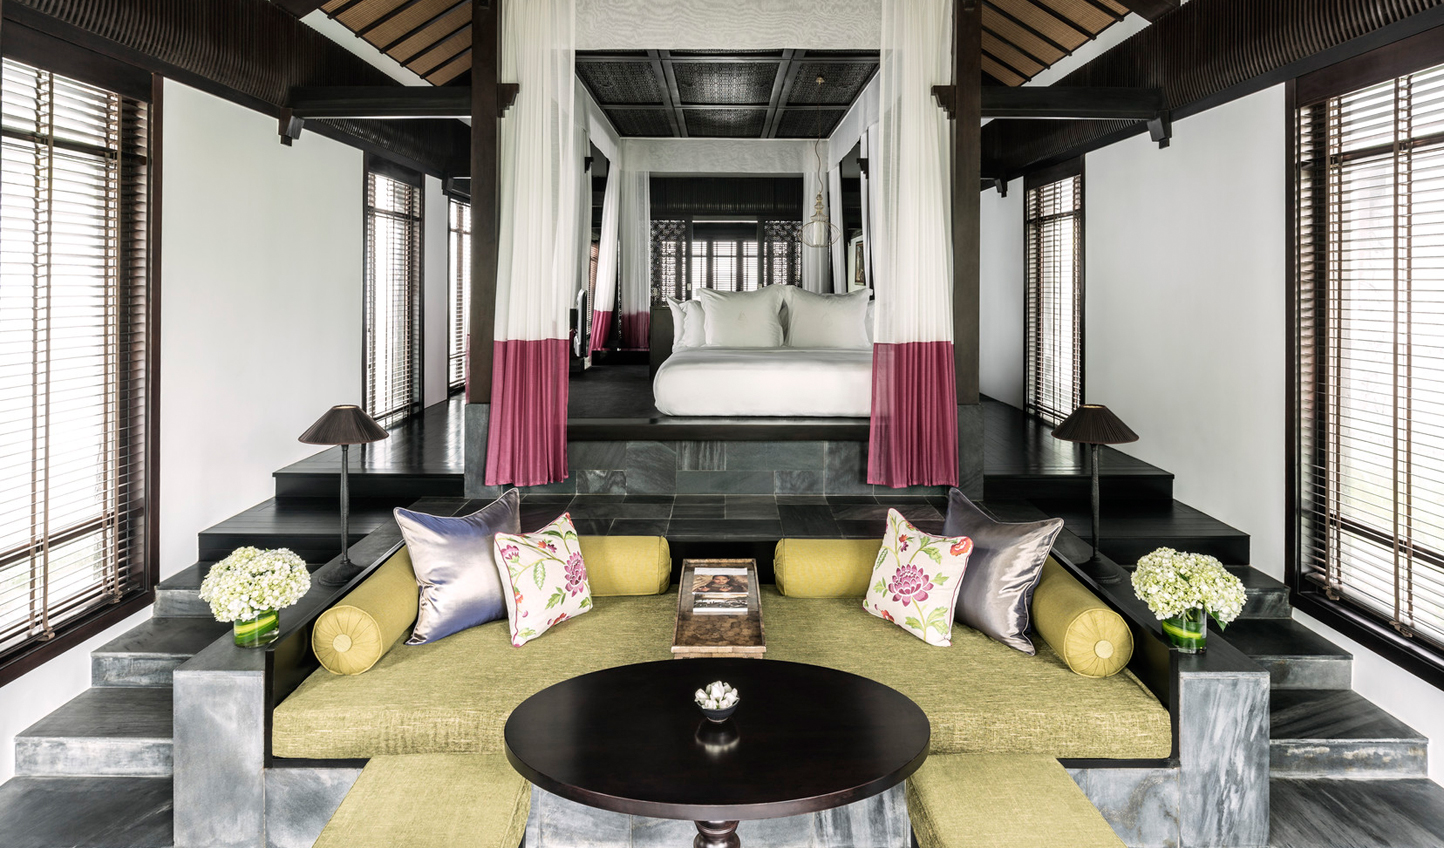 Sumptuous luxury in your villa